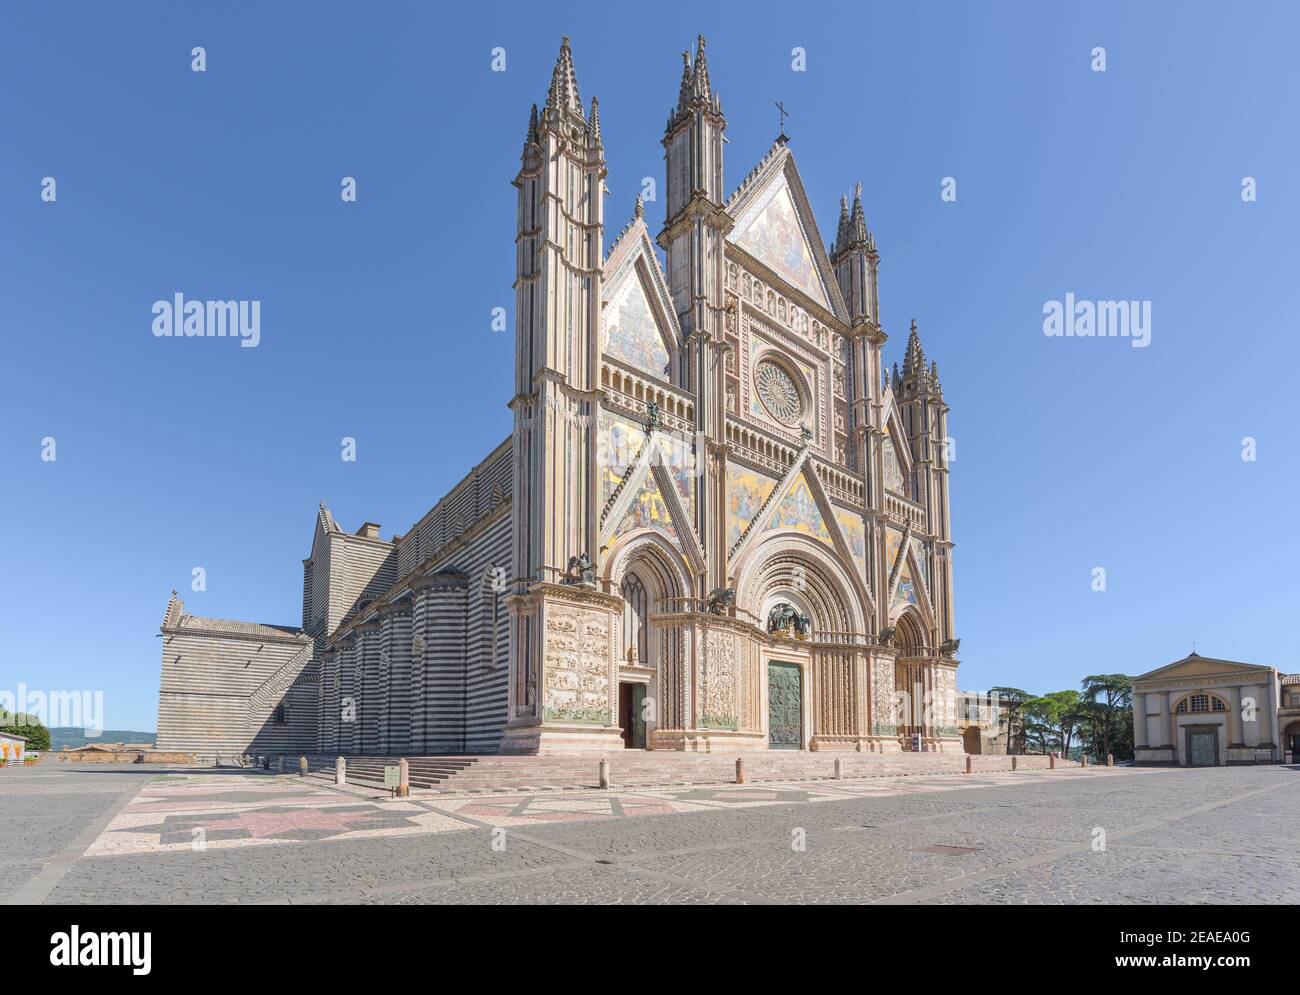 Renaissance facade of Orvieto cathedral, with rose window and gothic style spires and sculptures, a famous landmark in Orvieto medieval town in Umbria Stock Photo